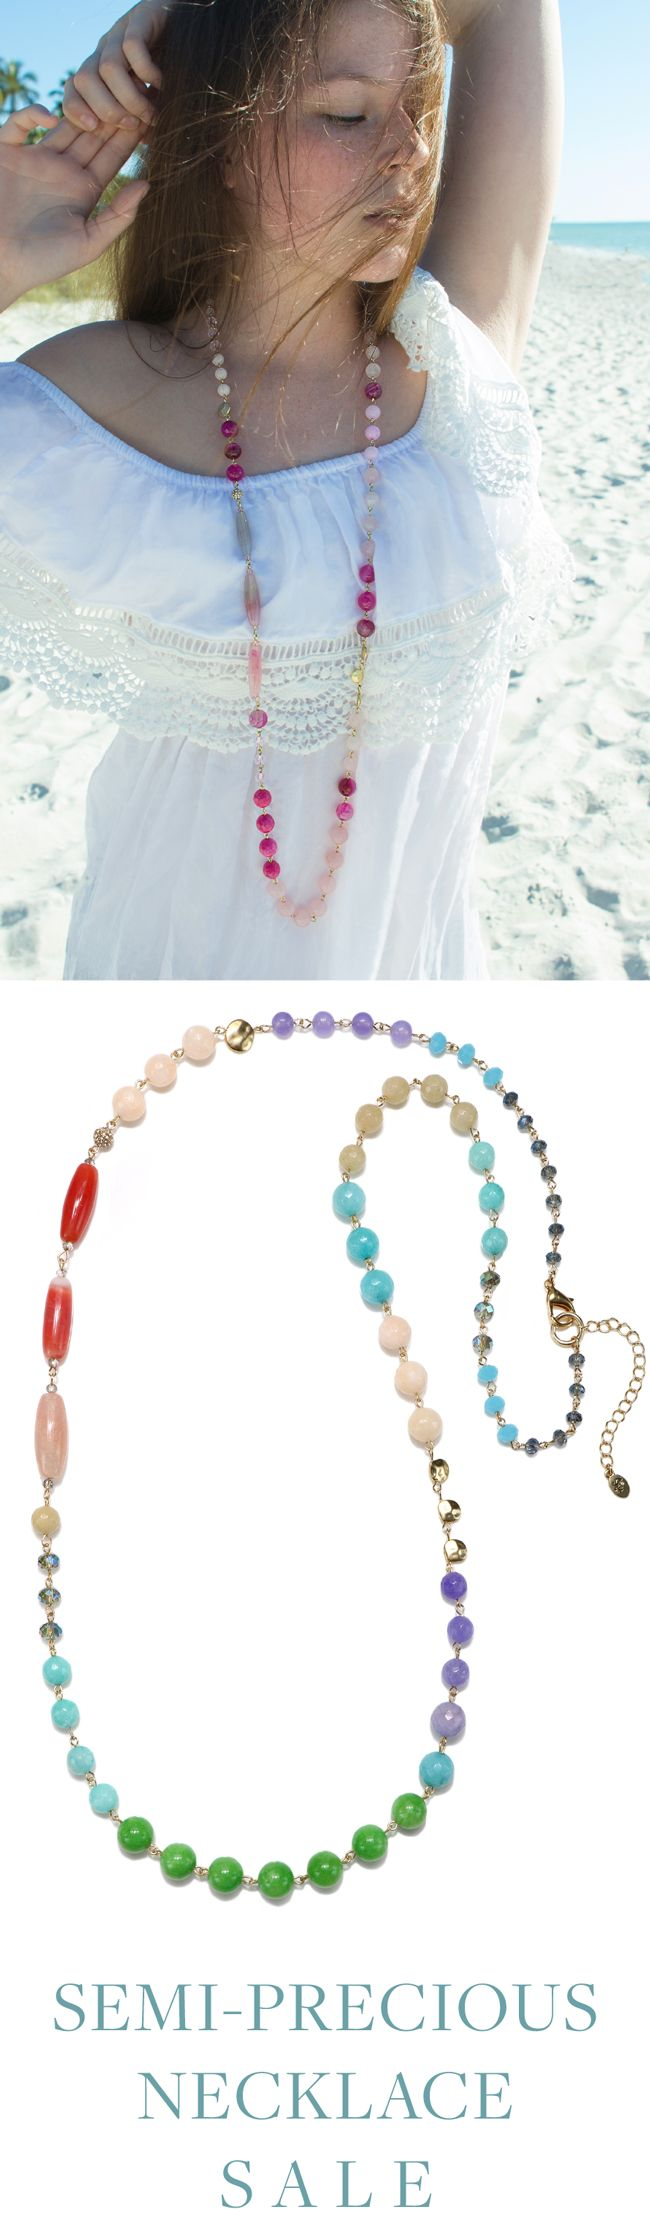 Summer Vibes start now with 25% off Semi-Precious Strand Necklaces! Shop now and wear for Memorial Day Weekend ☀️ Redeem code SEMI25 at checkout to receive 25% off our semi-precious strand necklace collection. Note that this discount code cannot be combined with other coupon codes. Online-only. Promotion valid thru 05/31/17 11:59pm EST.